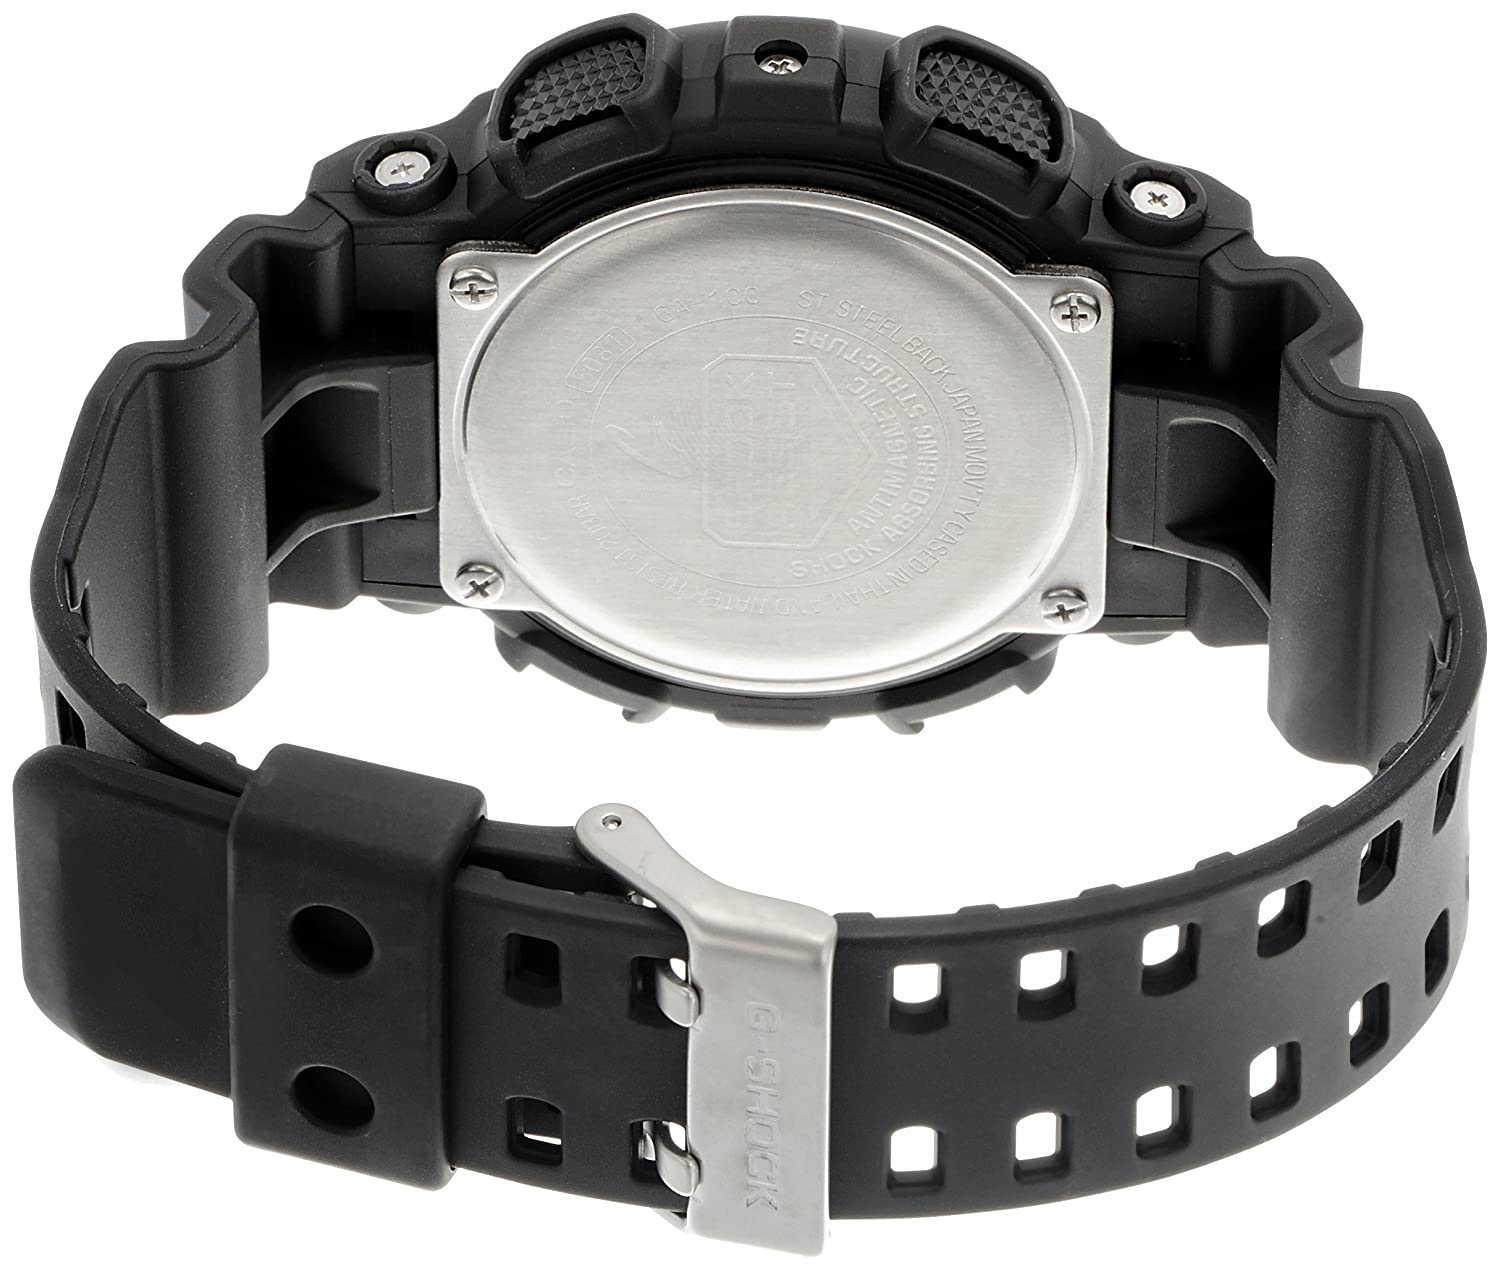 Buy casio g shock analog digital black dial mens watch ga 100 buy casio g shock analog digital black dial mens watch ga 100 1a1dr g270 online at low prices in india amazon fandeluxe Choice Image